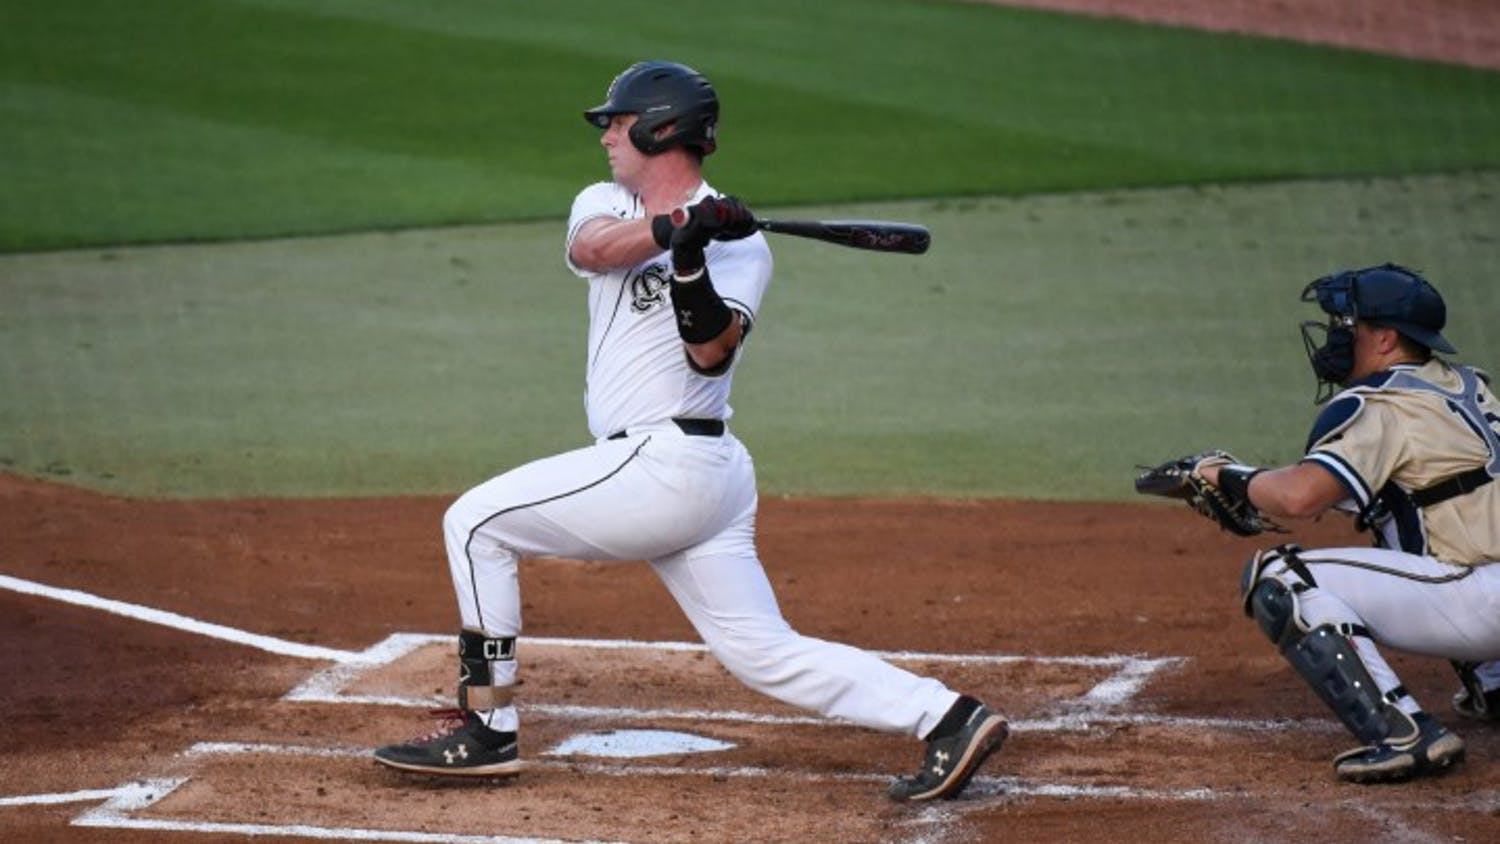 Junior catcher Wes Clarke swings at a pitch during South Carolina's game against Charleston Southern. The Gamecocks won 9-0 on Tuesday.